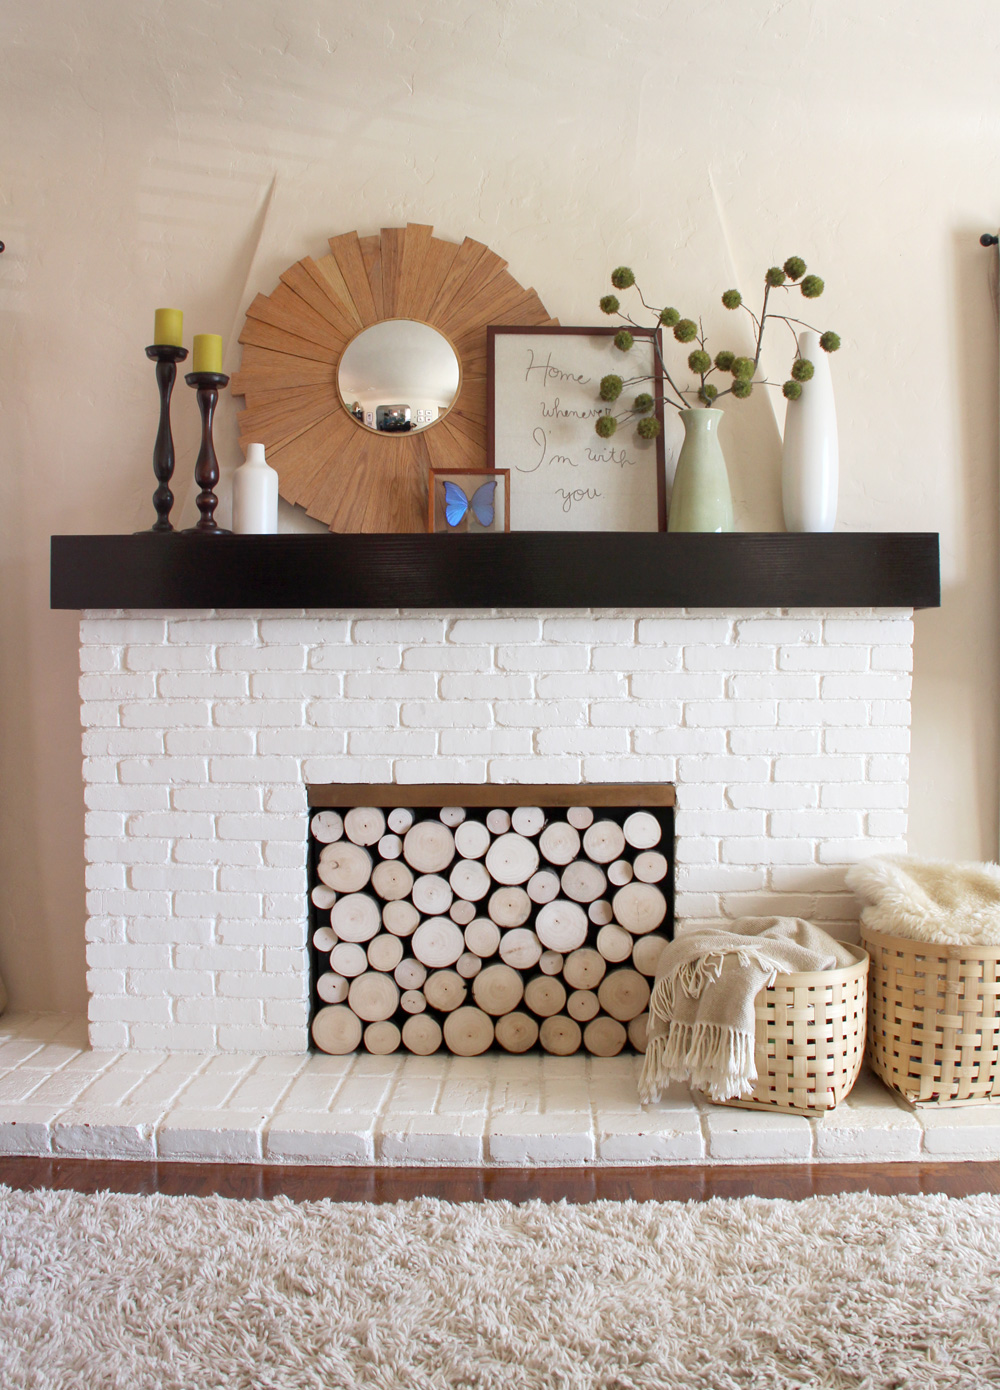 Update: our faux fireplace screen made it into This Old House! Check out the details here. Six ish months ago we had to turn the gas off in our fireplace..